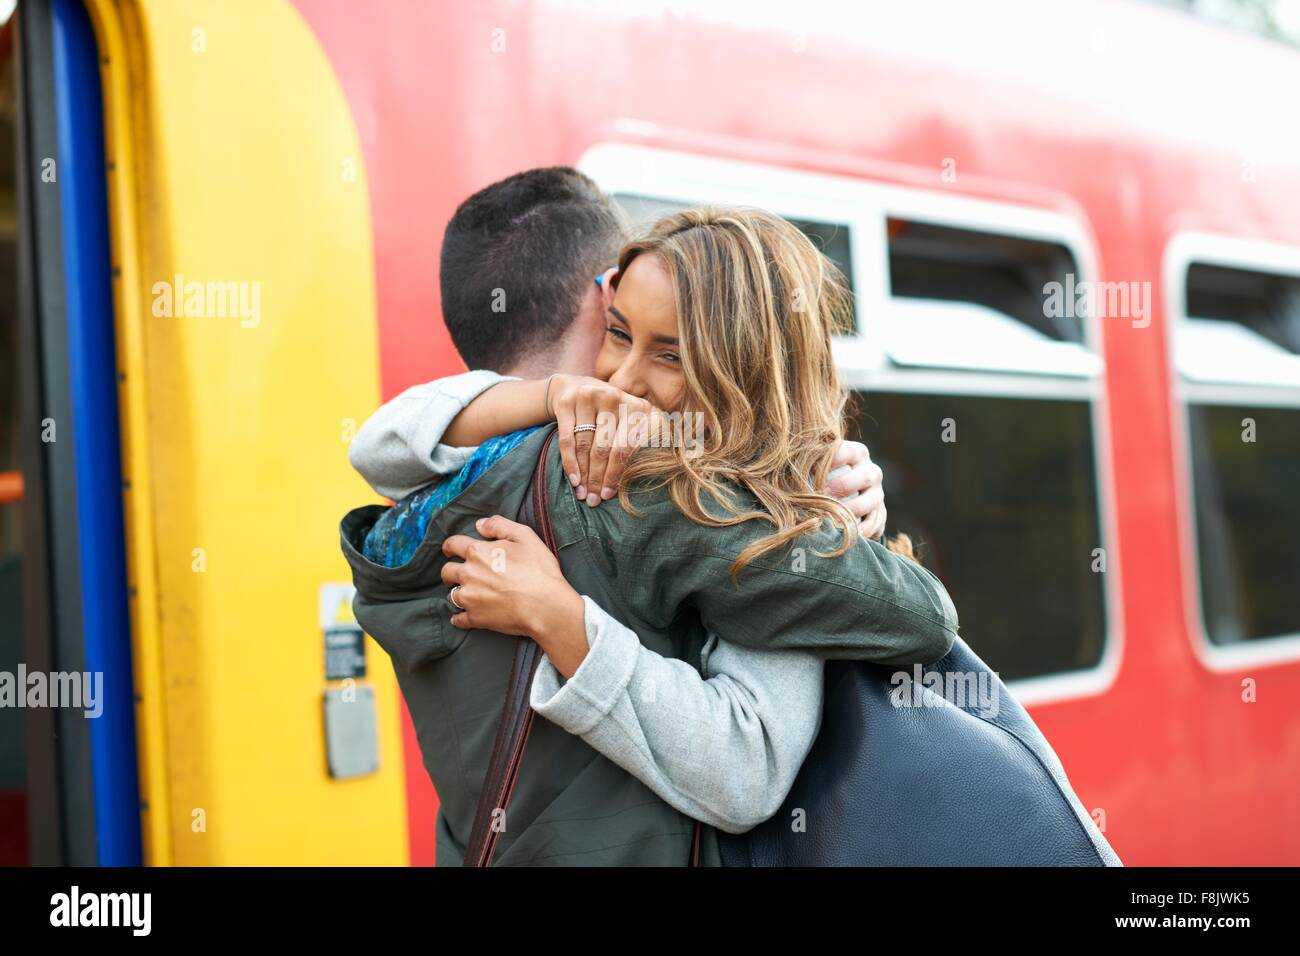 Heterosexual couple hugging at railway station - Stock Image